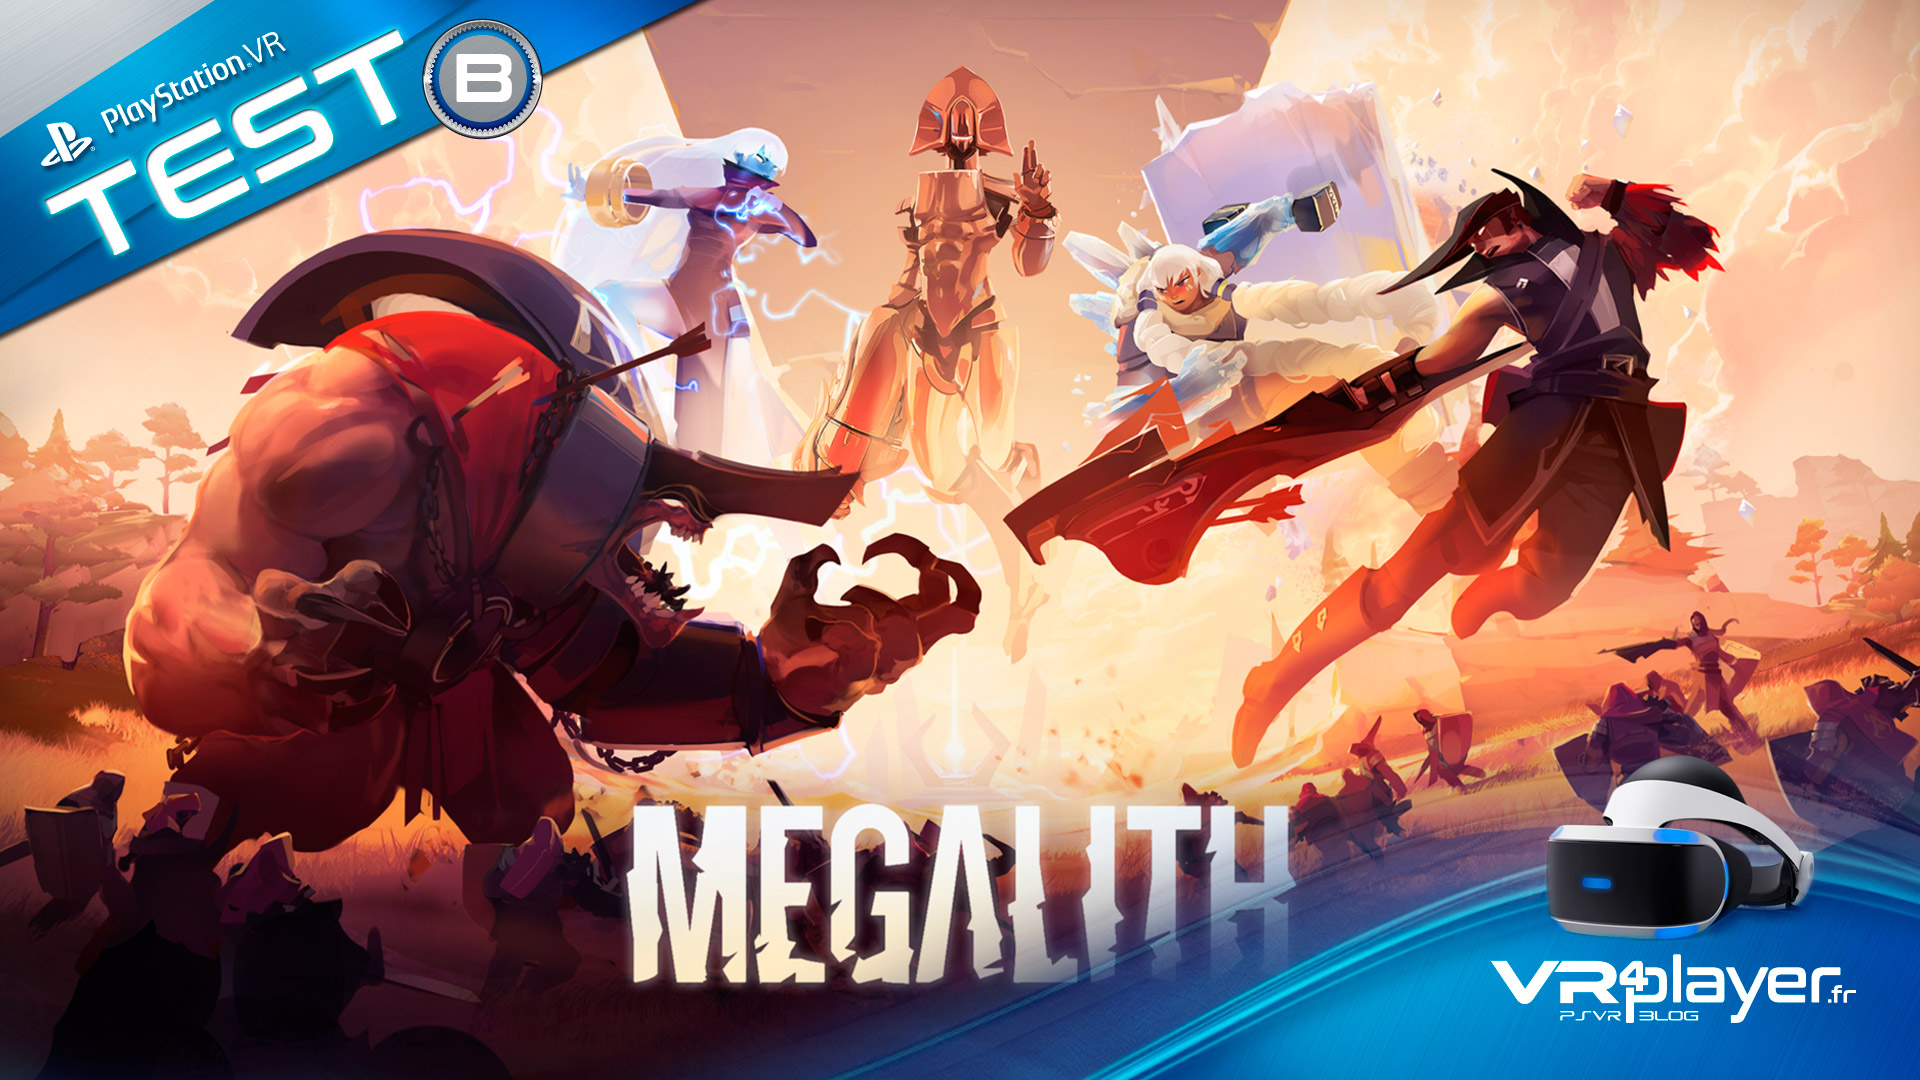 Megalith sur PlayStation VR, PSVR, Test VR4player.fr